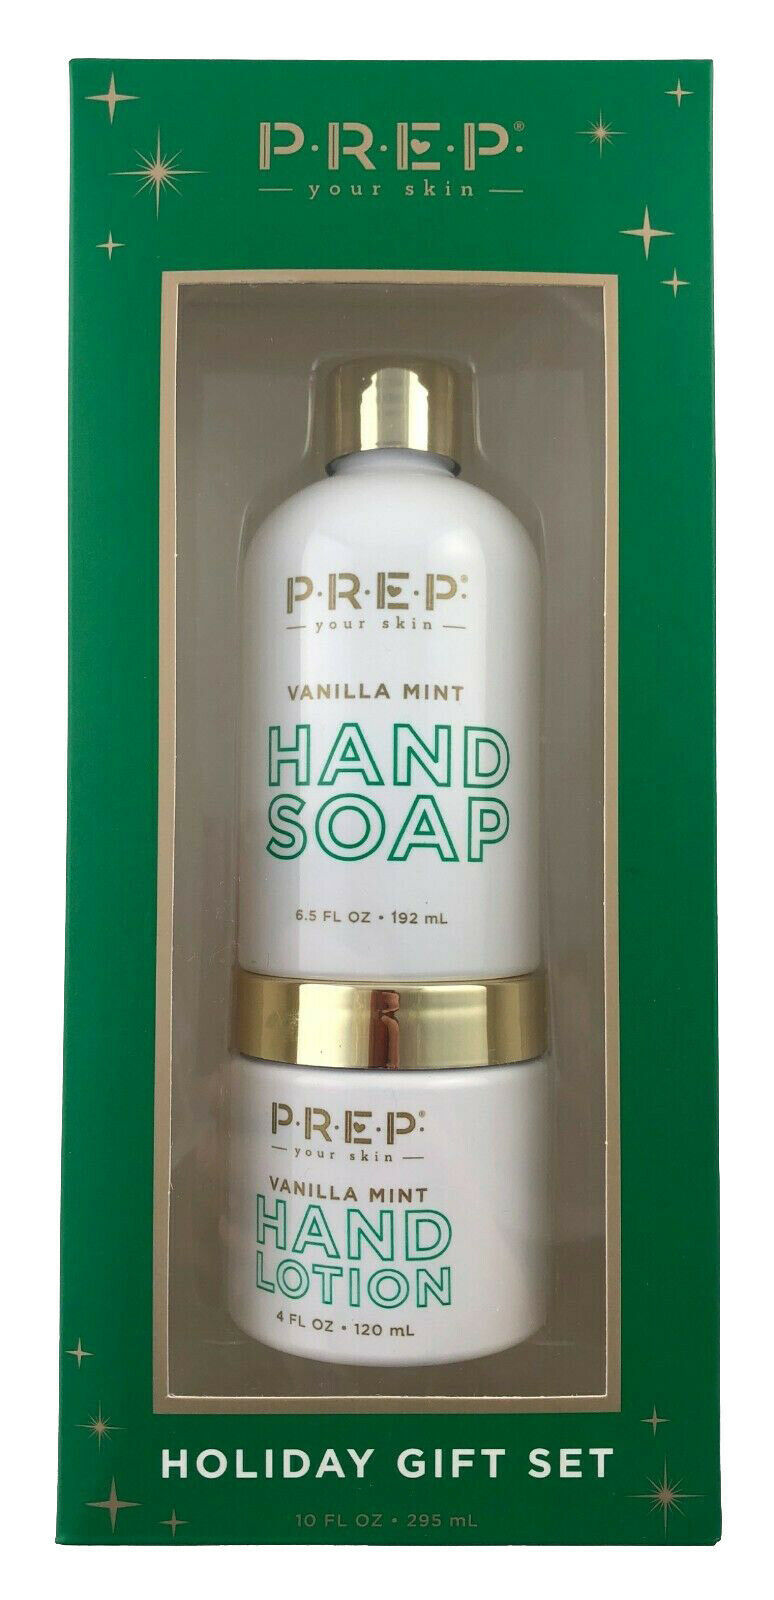 New PREP Your Skin Vanilla Mint Hand Soap And Lotion Holiday Gift Set 10.5 Fl Oz